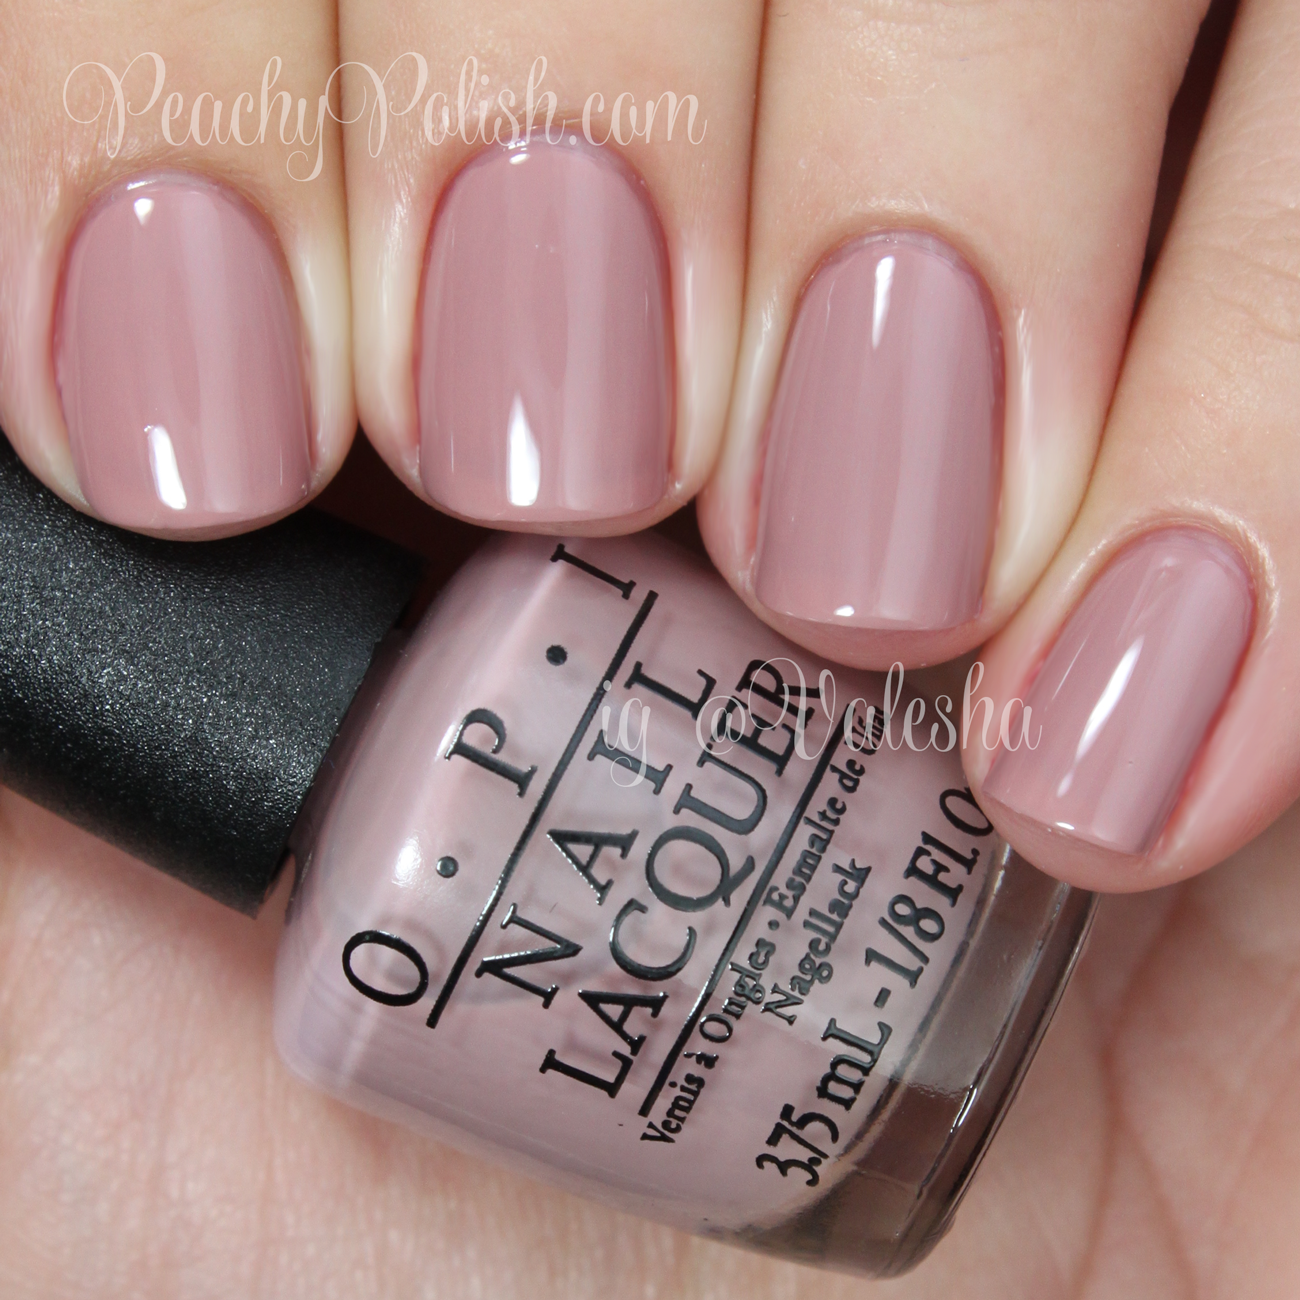 OPI Tickle My France-y - Peachy Polish | My Style | Pinterest | OPI ...